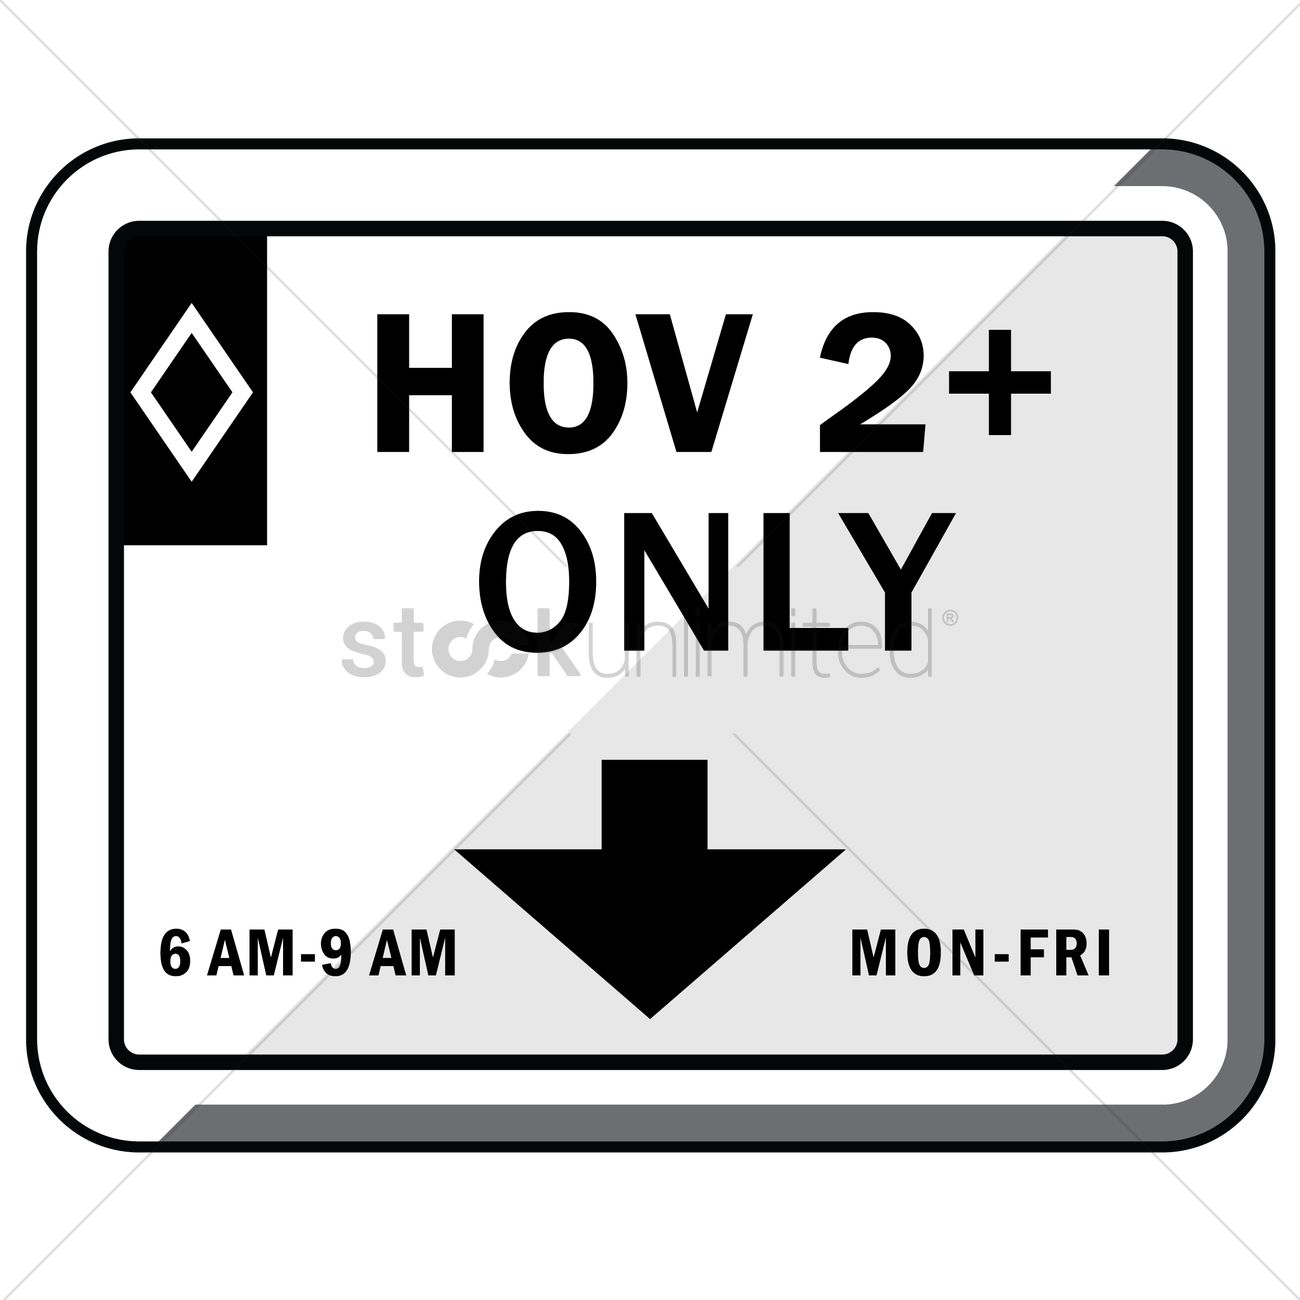 Hov lane assignment (overhead) Vector Image.